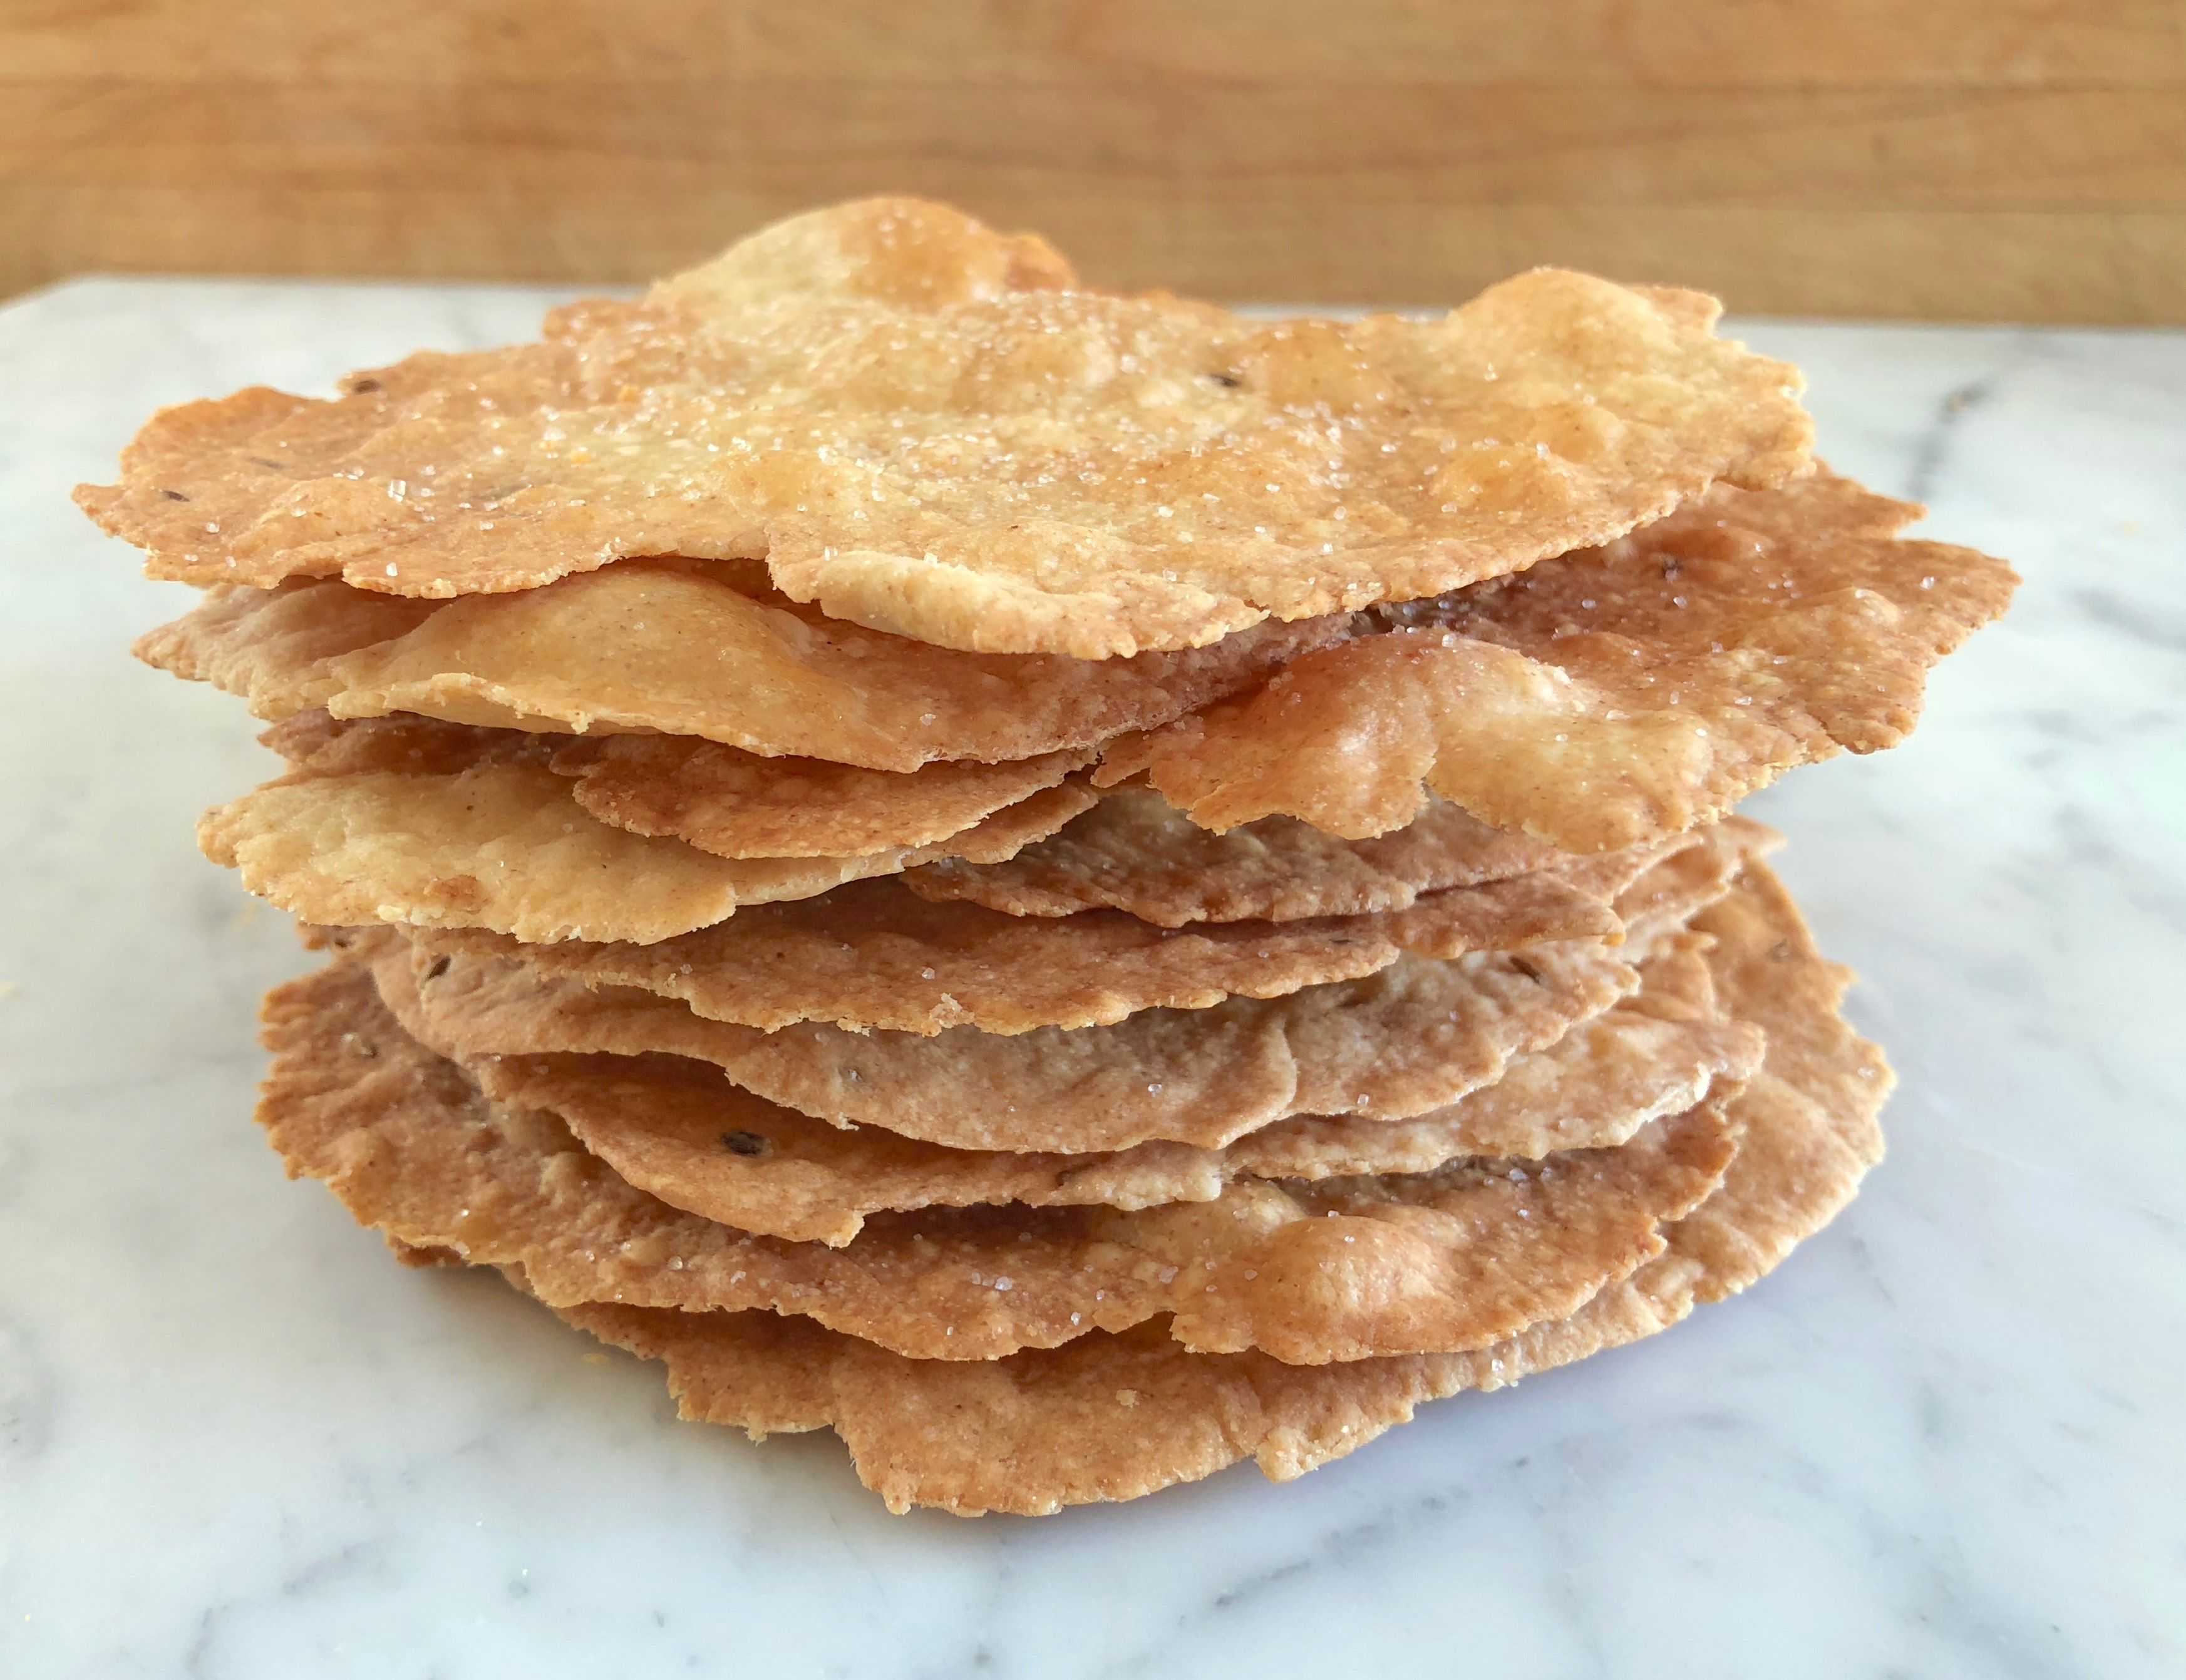 See How to Make Spanish Olive Oil Crackers